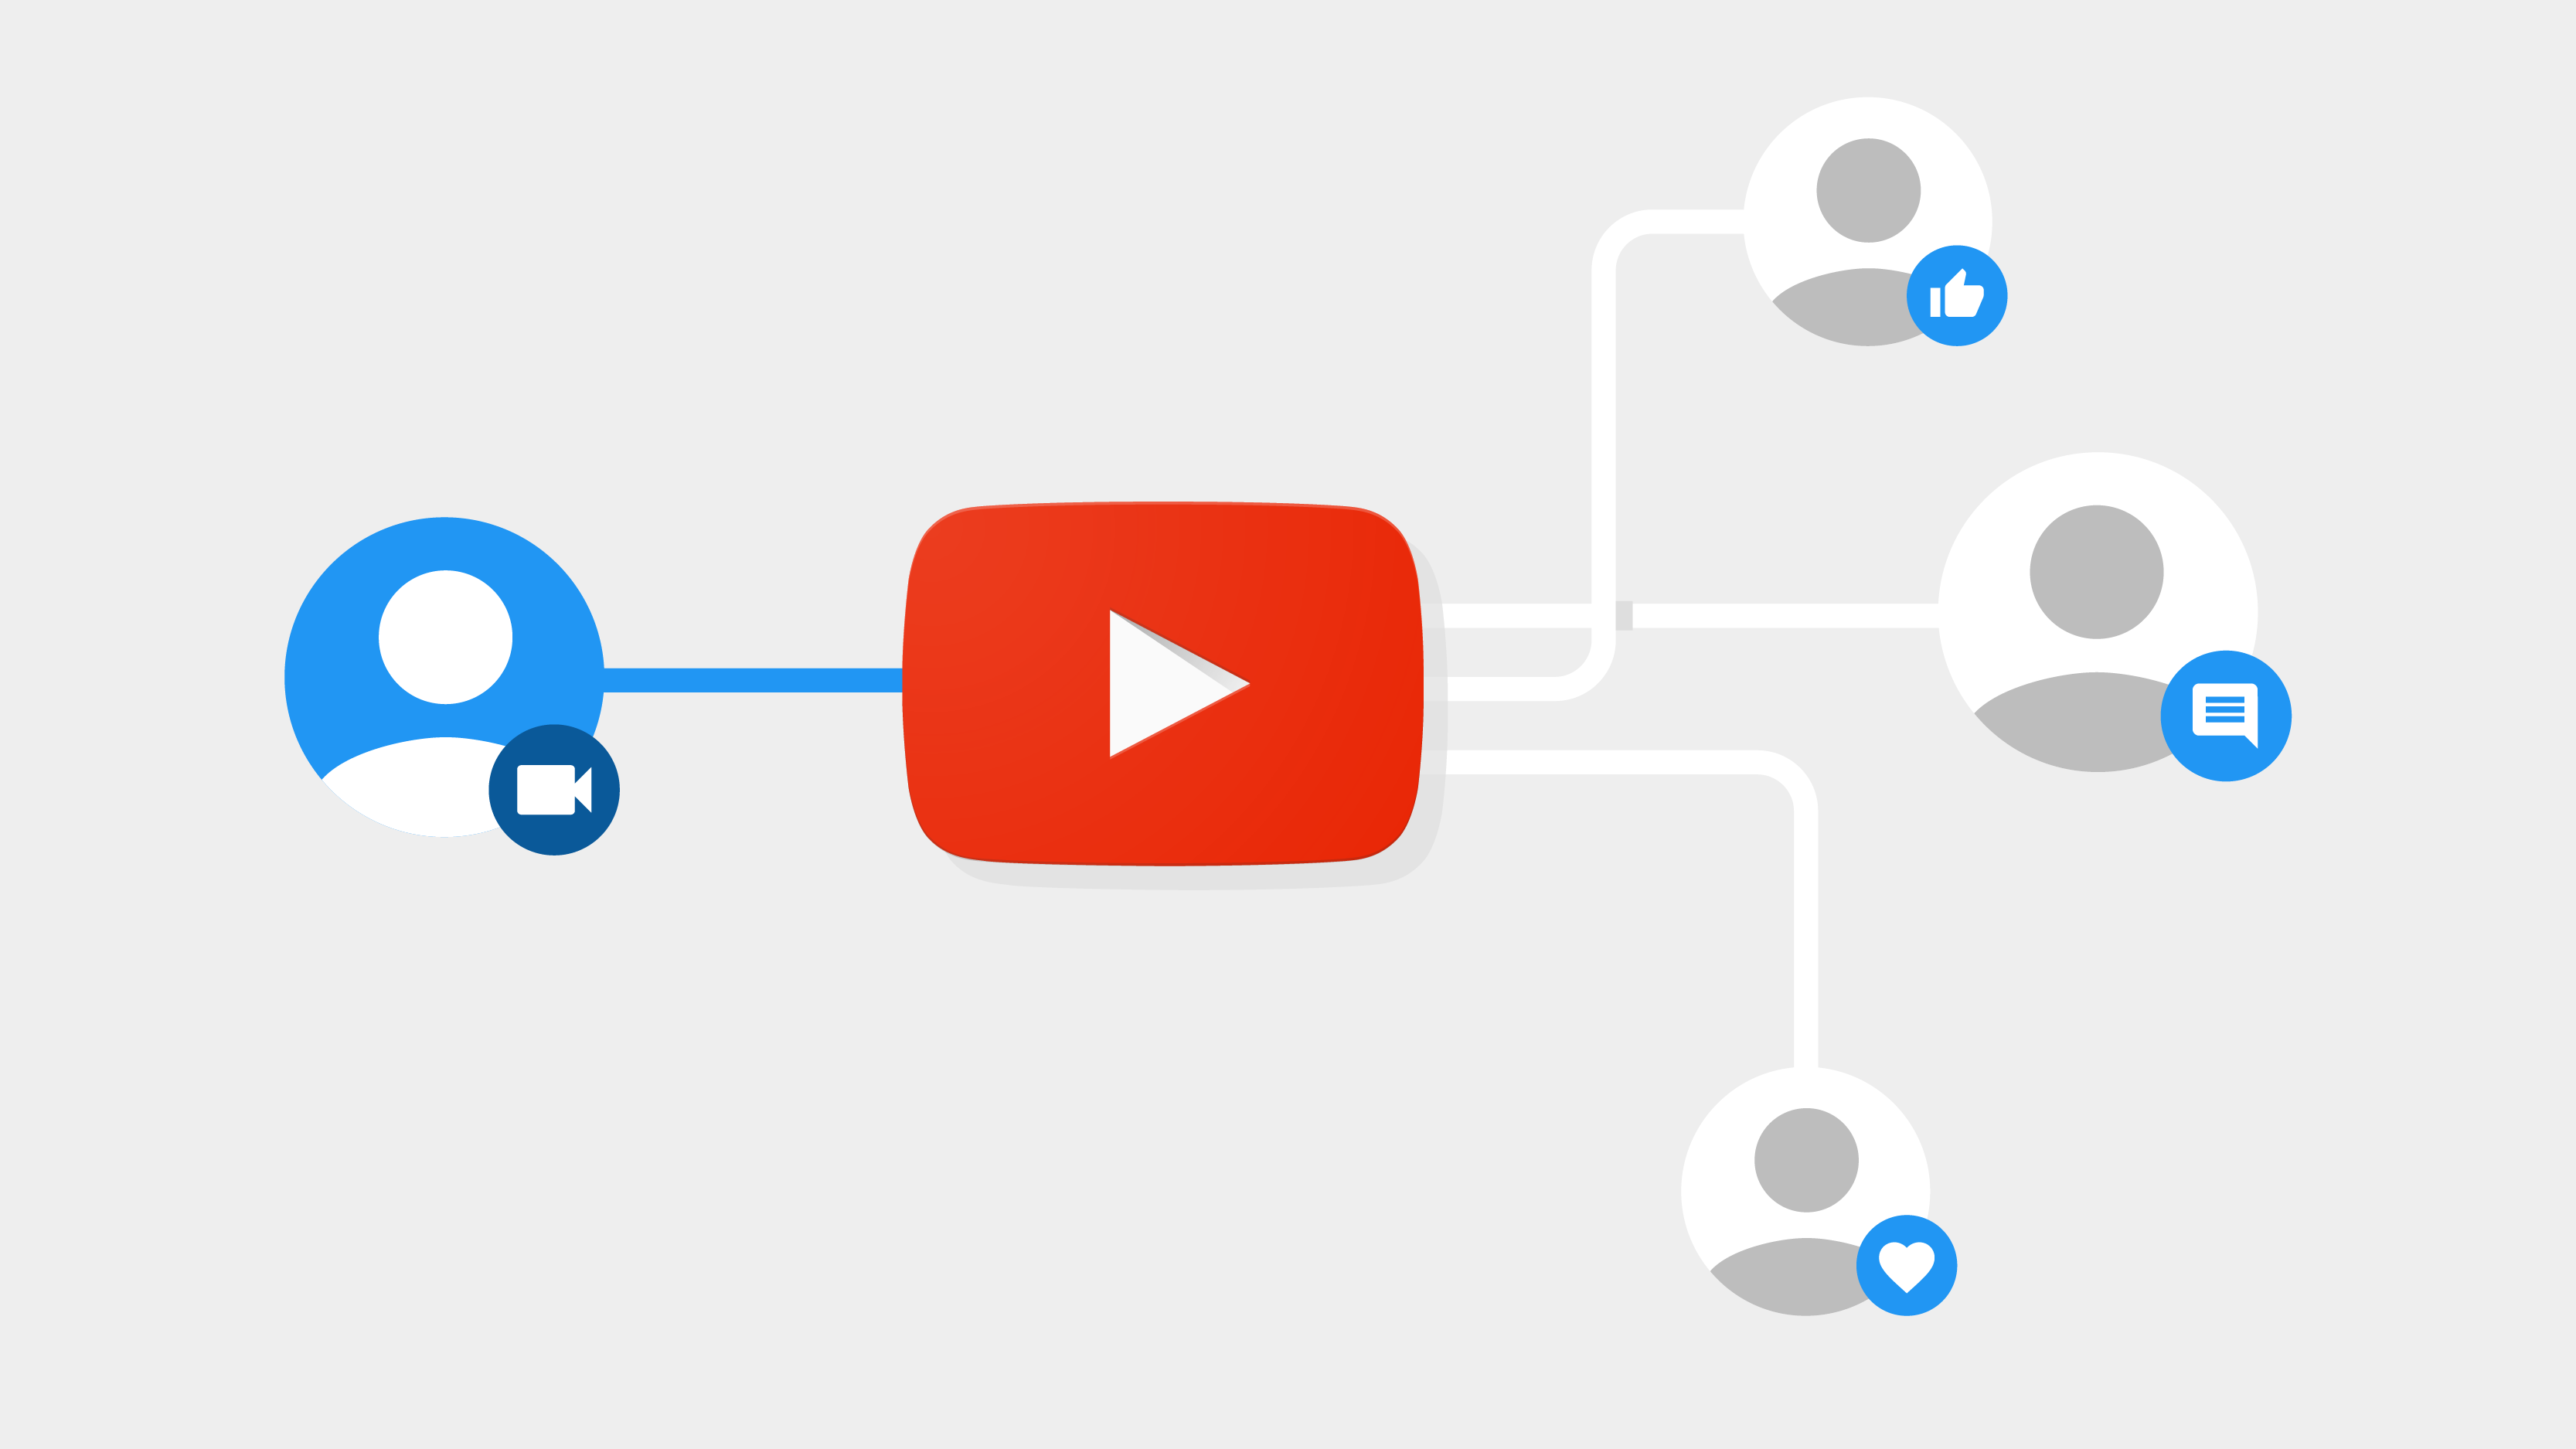 Youtube connection